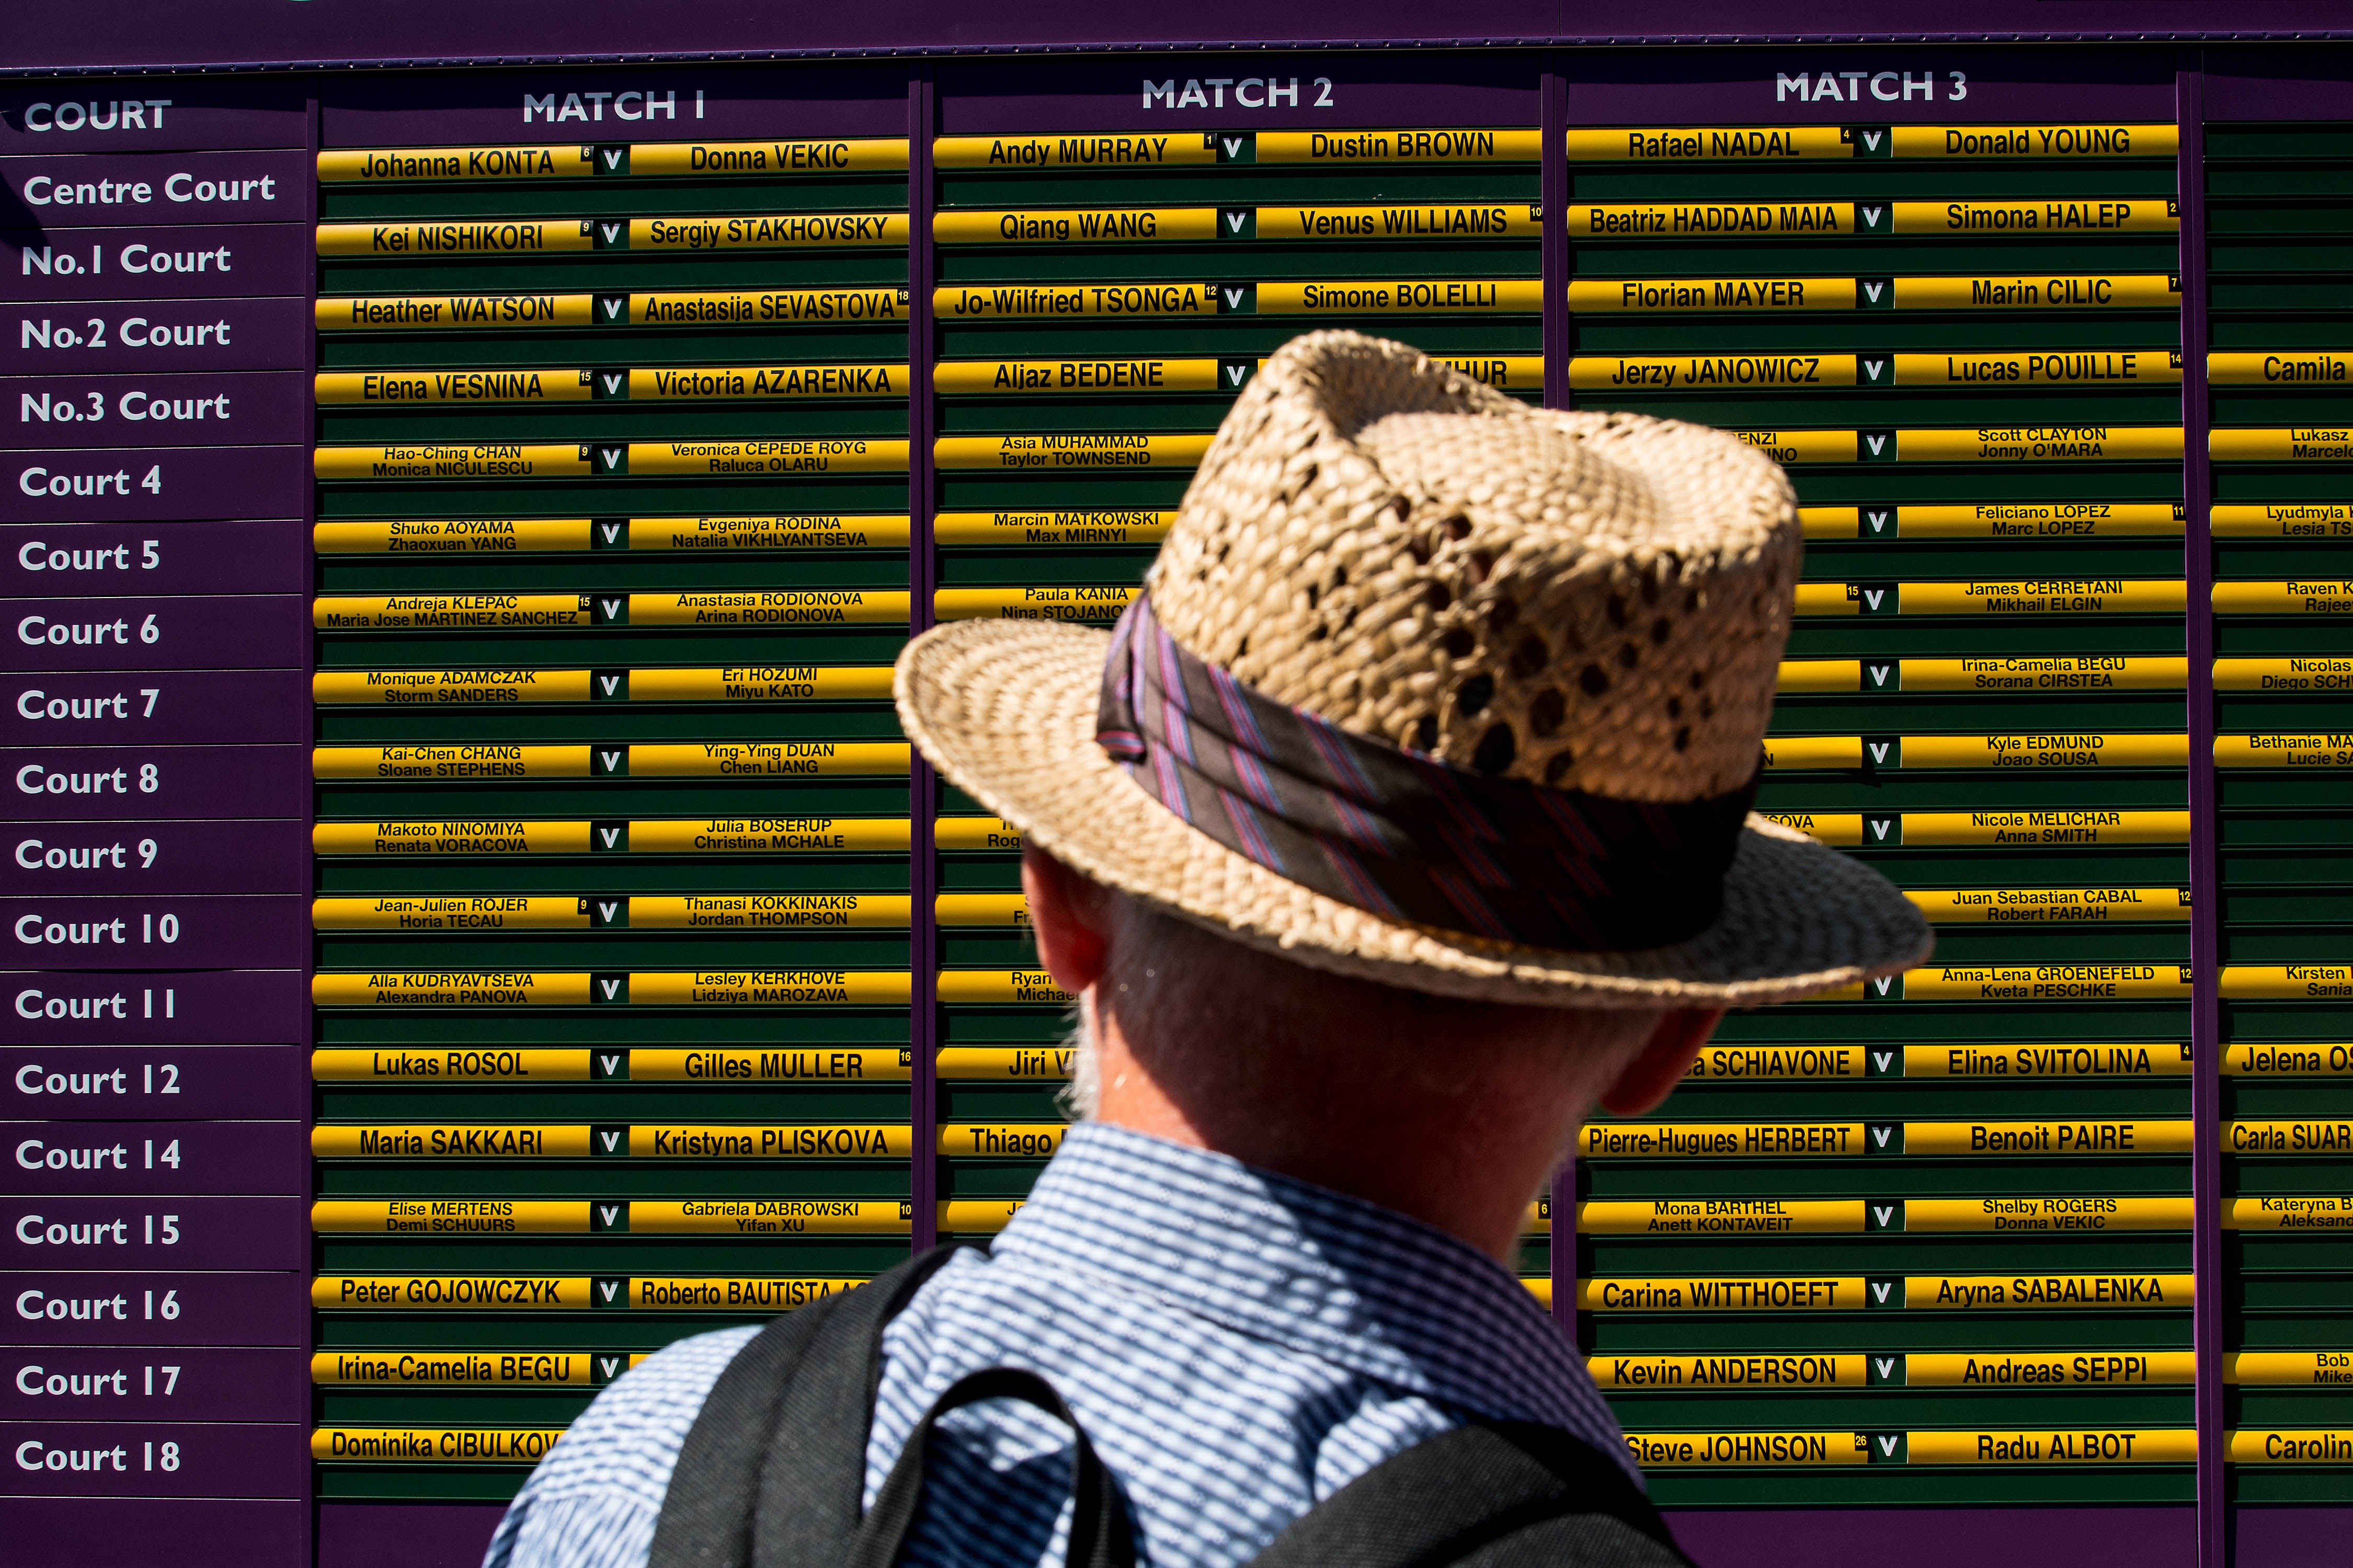 LONDON, ENGLAND - JULY 05: A spectaror looks at the order of play board on day three of the Wimbledon Lawn Tennis Championships at the All England Lawn Tennis and Croquet Clubon July 4, 2017 in London, England. (Photo by David Ramos/Getty Images)